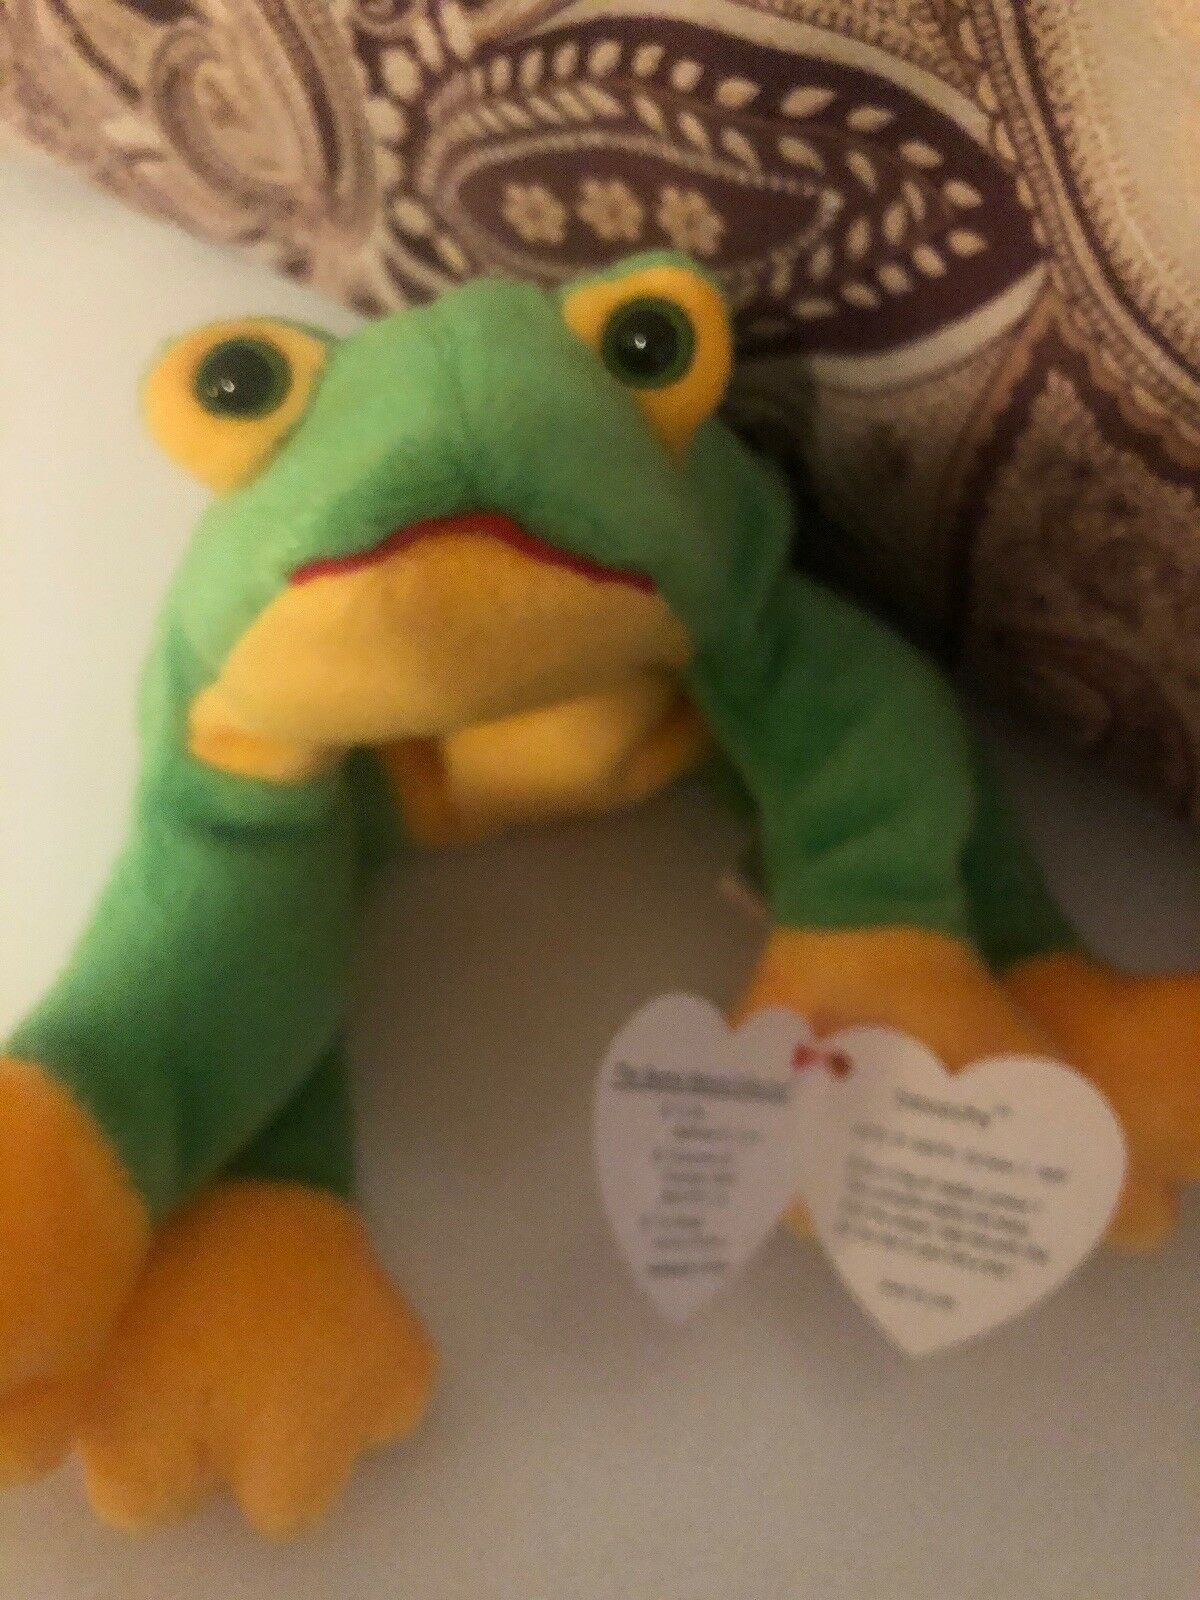 Ty Beanie Baby Smoochy Frog 1997 With Tags Stuffed Plush Plush Plush Toy FREE Shipping 7f7ea3